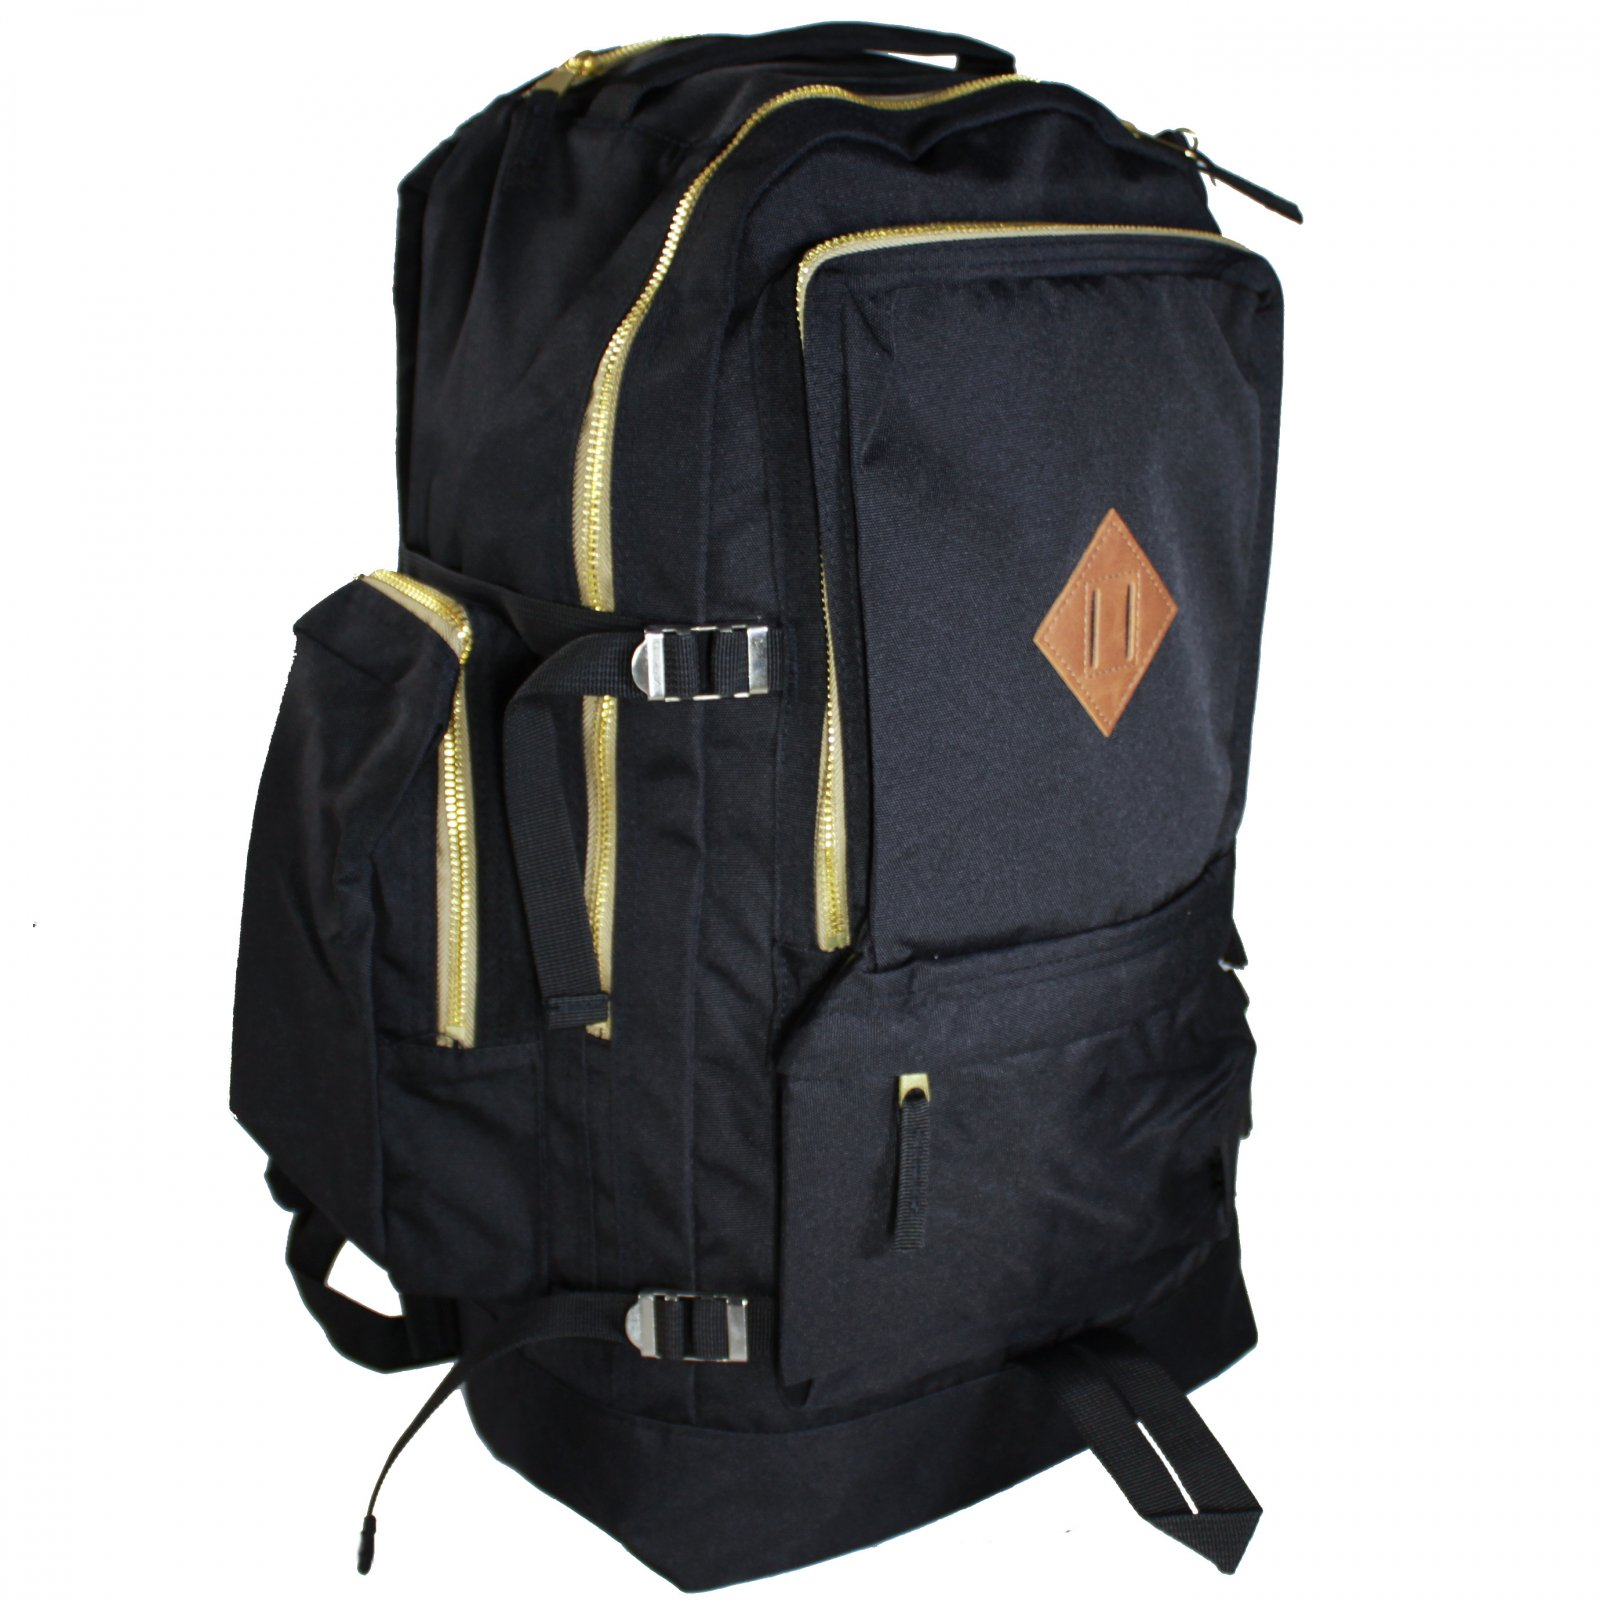 ASR Outdoor 24L Journey Day Backpack with Interior Laptop Pocket, Black and Gold